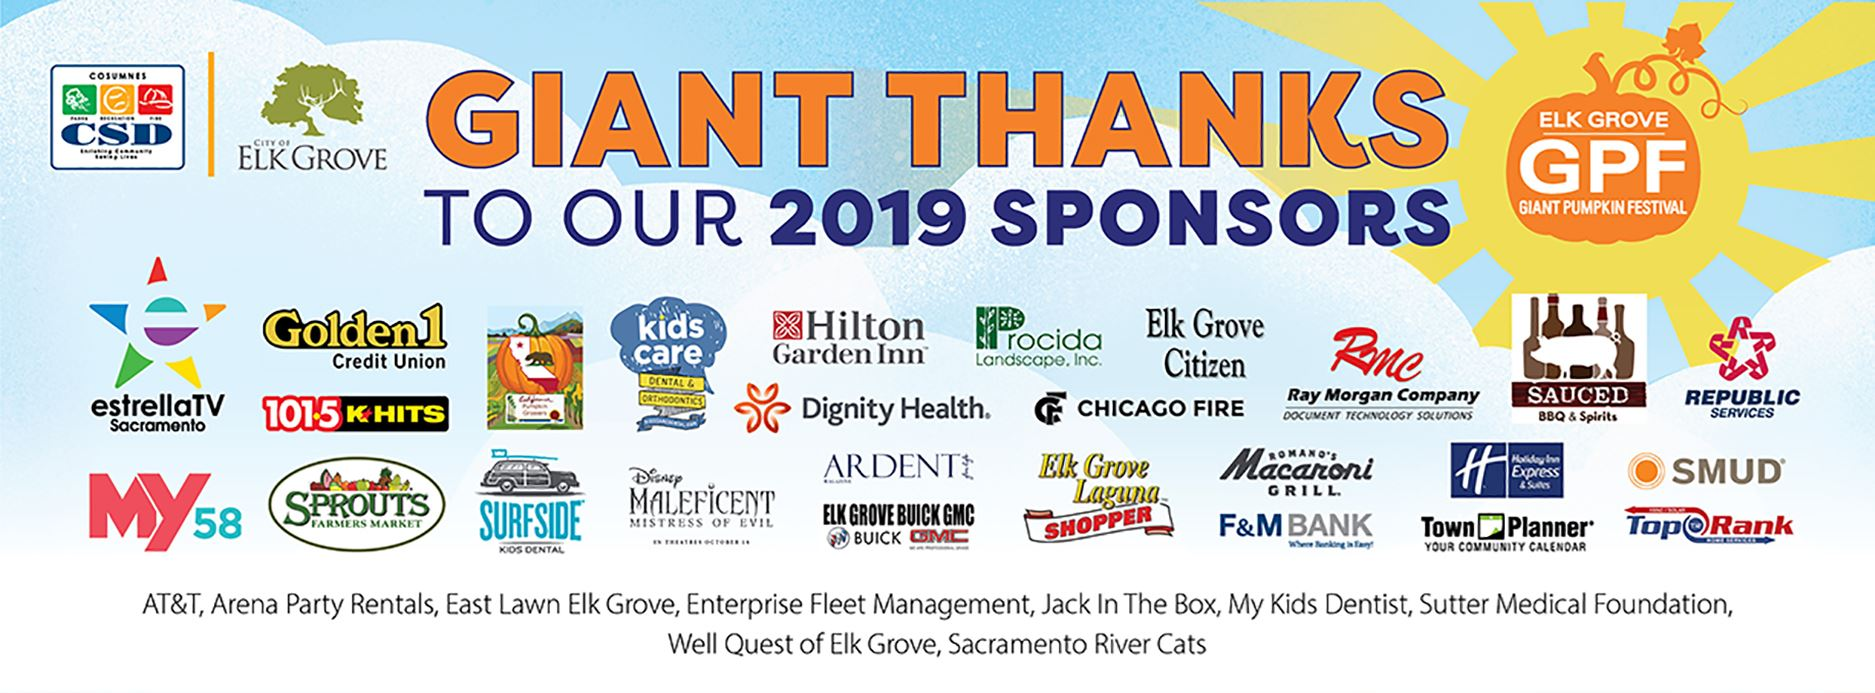 Graphic Image of all the Giant Pumpkin Festival 2019 Sponsors.